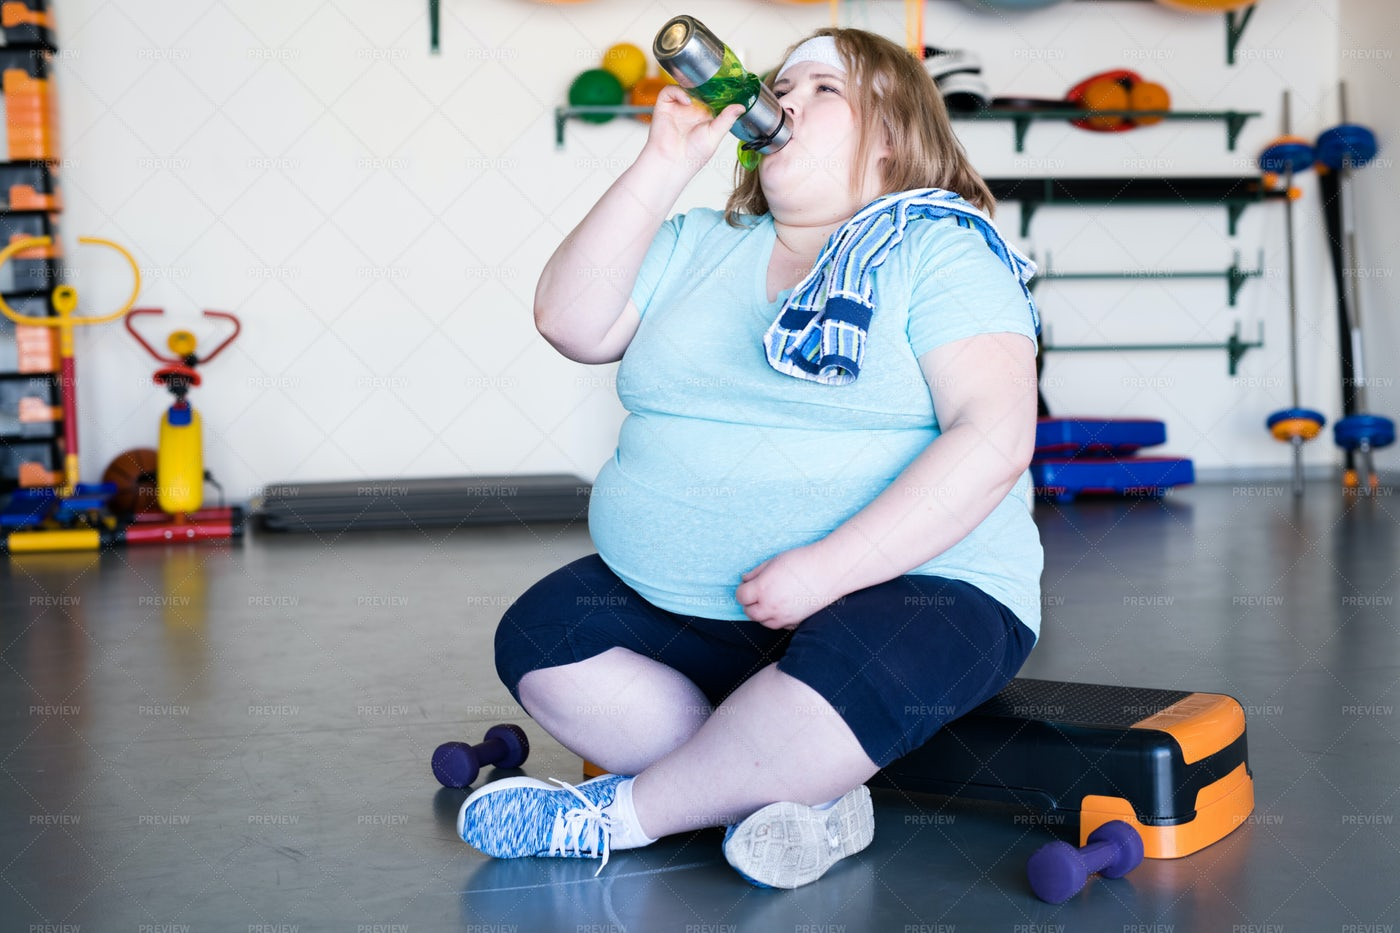 Exhausted Overweight Woman In Gym: Stock Photos